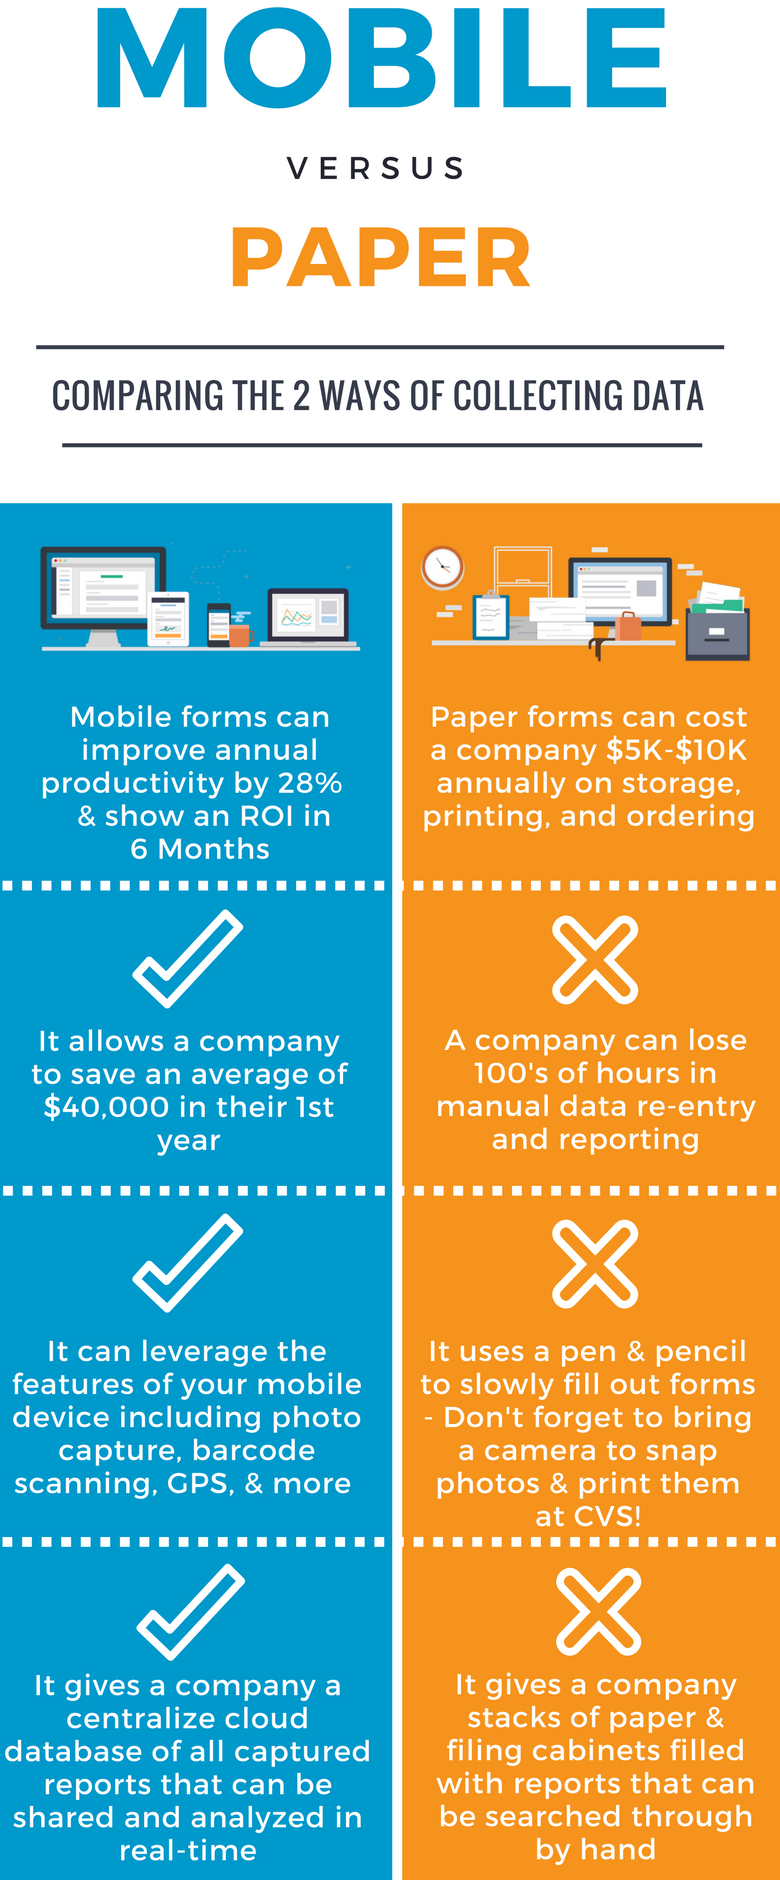 Map of Paper Forms versus Mobile Forms